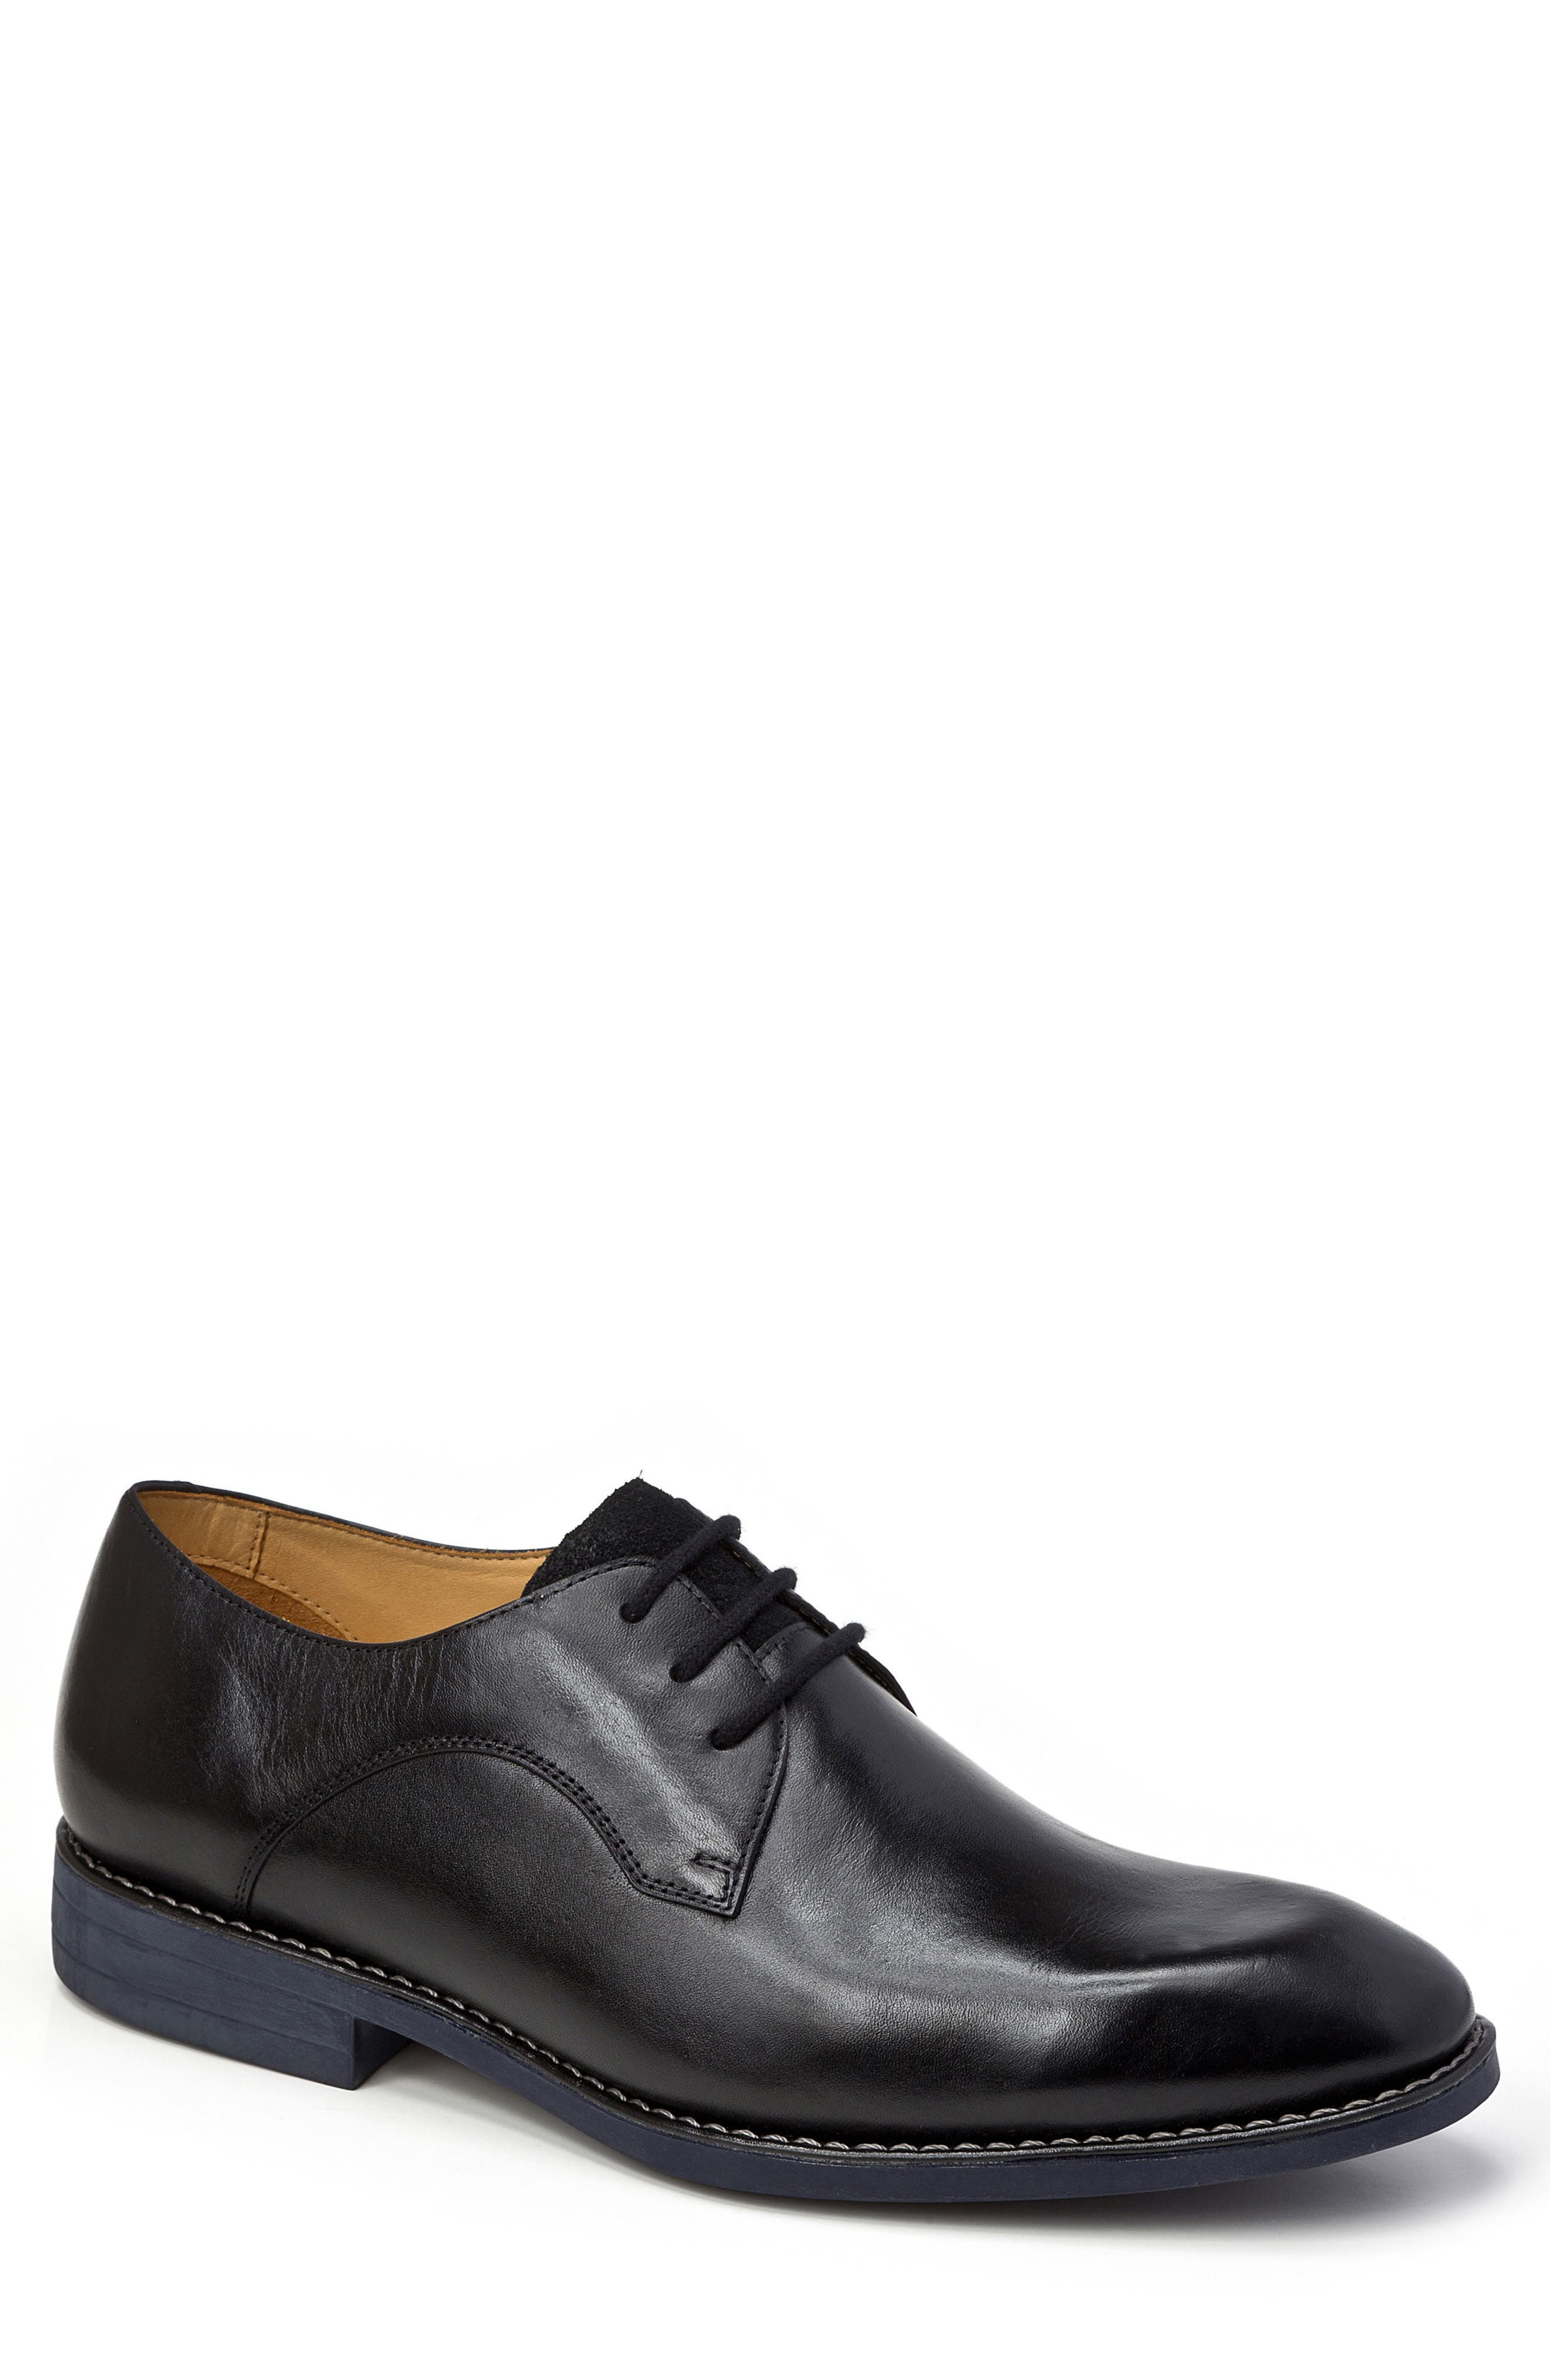 SANDRO MOSCOLONI Garret Plain Toe Derby, Main, color, BLACK LEATHER